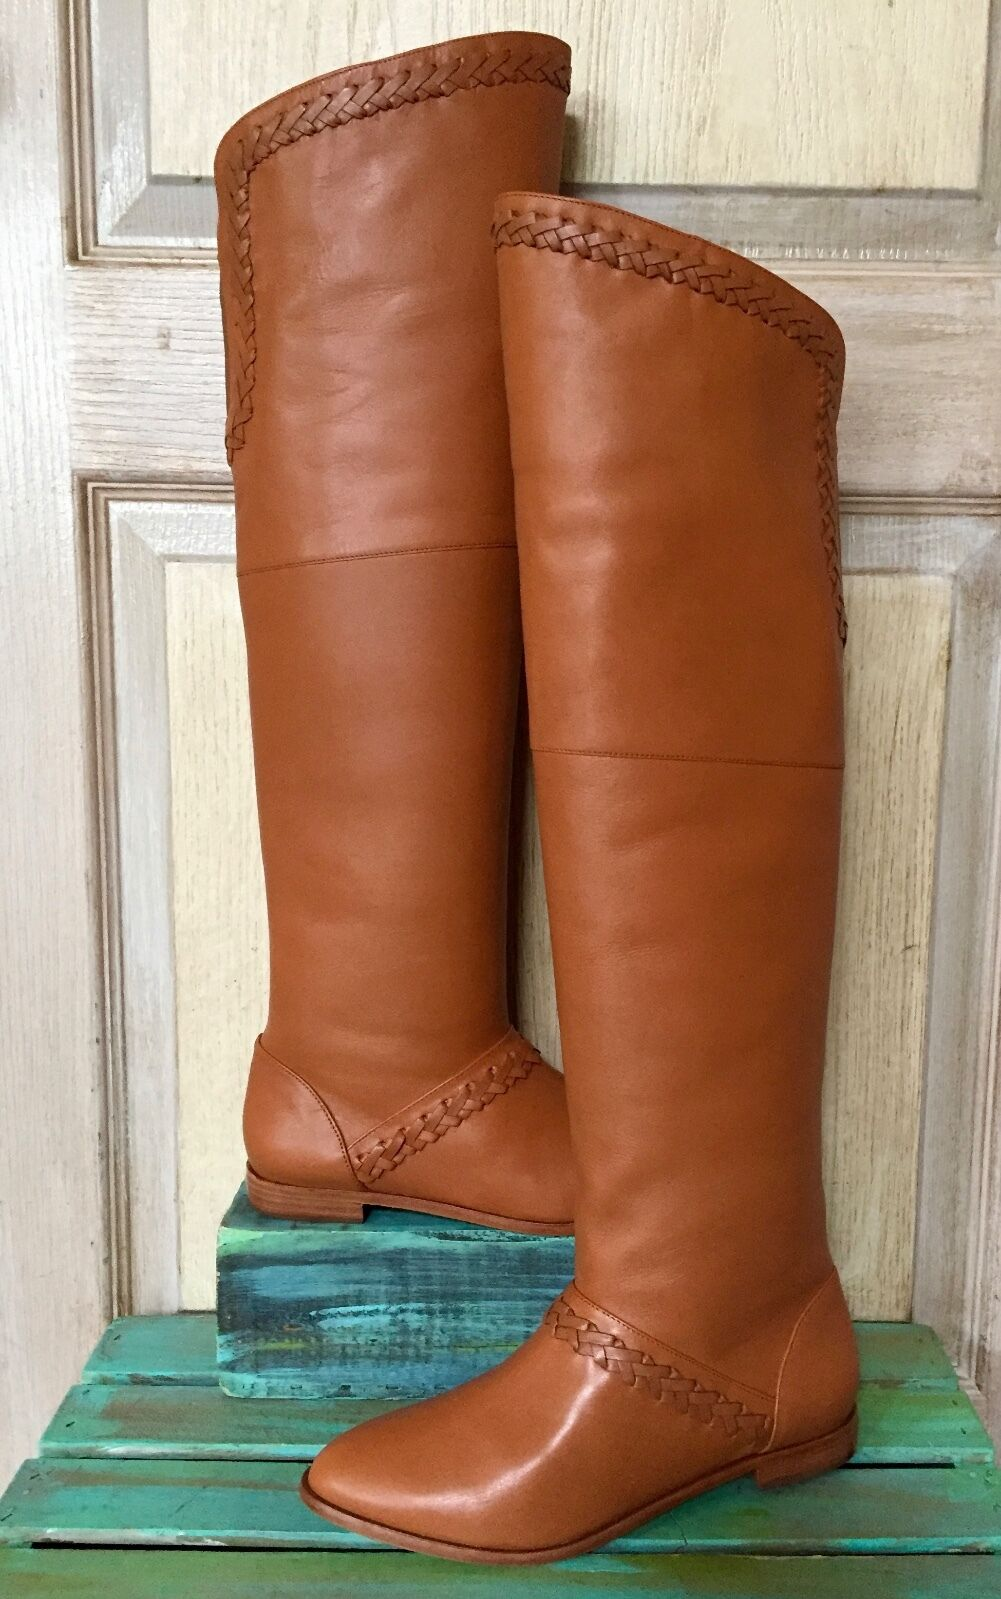 NIB Candela Candela Candela Cognac Leather Braided Pull On Over The Knee Boots 6 e7f244